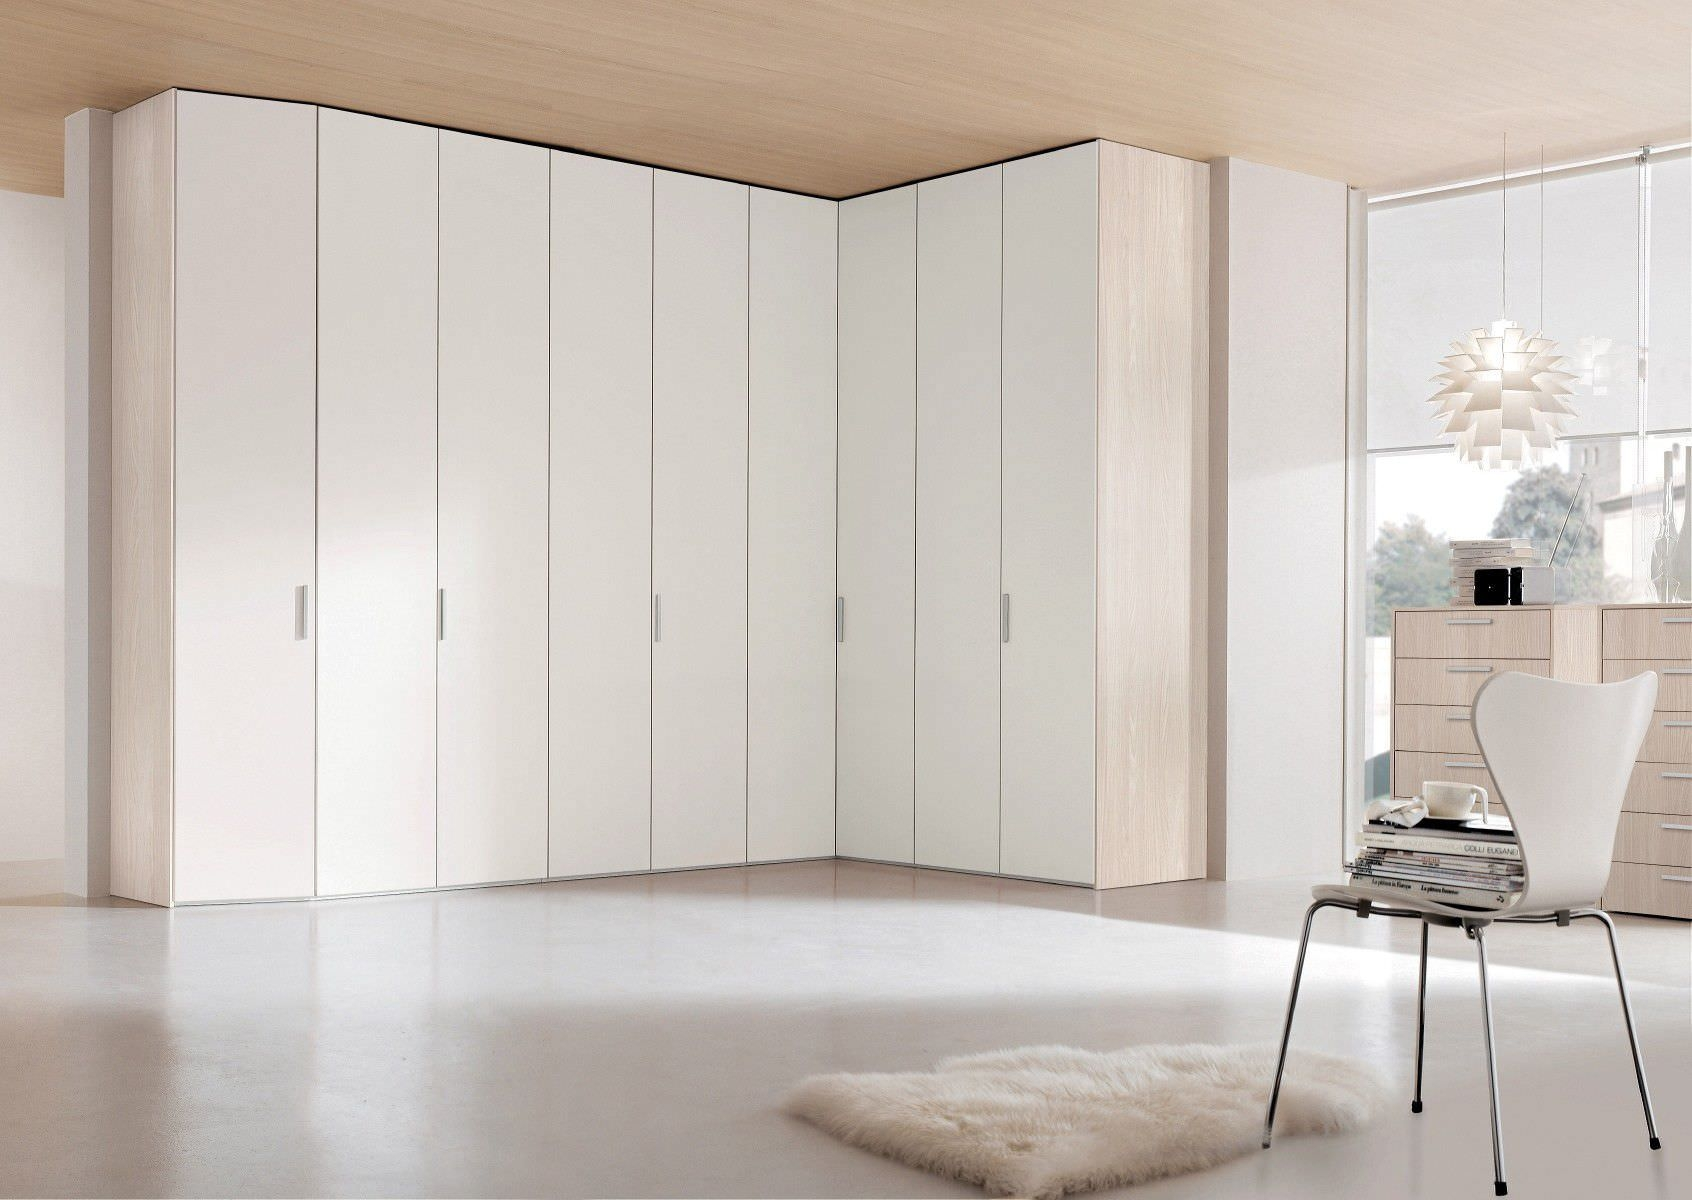 Wall Wardrobe Wall Wardrobes And Fitted Wardrobes Wood Crafters Within Wall Wardrobes (Image 10 of 15)